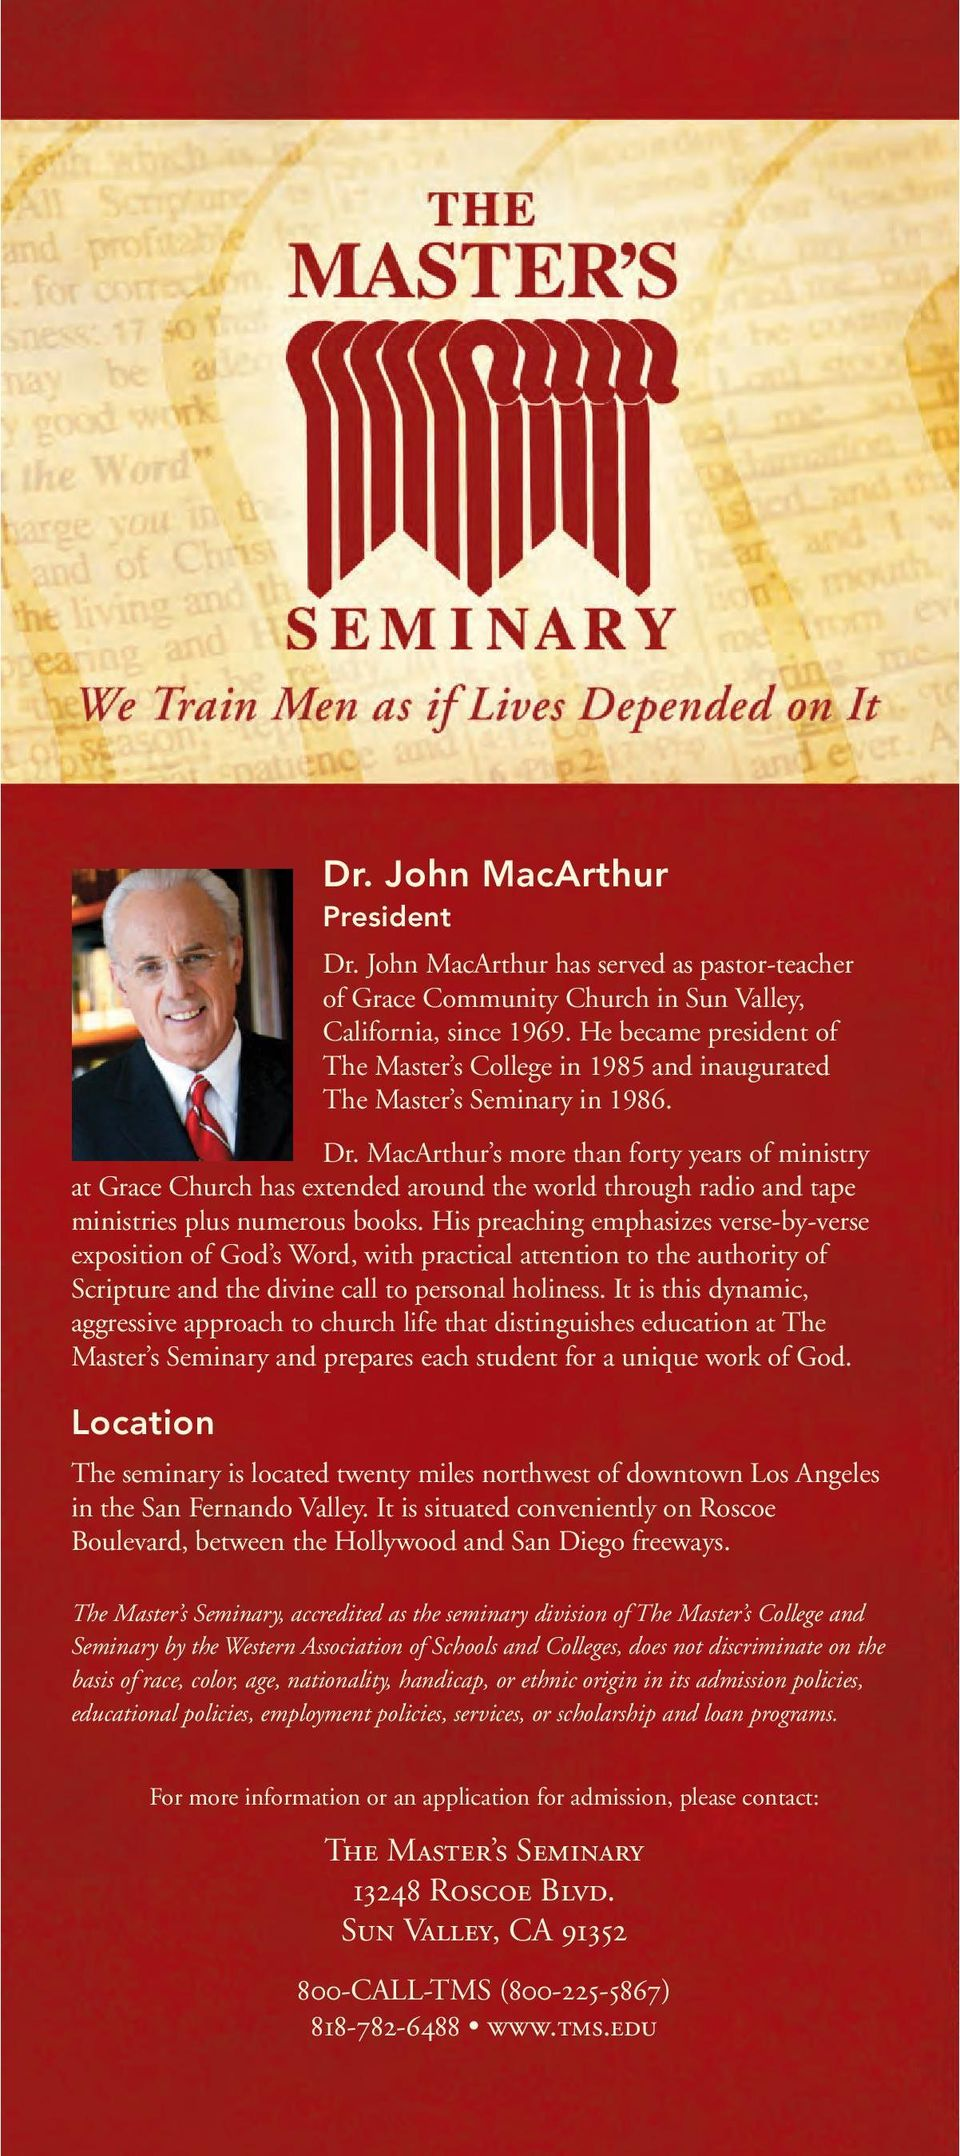 MacArthur s more than forty years of ministry at Grace Church has extended around the world through radio and tape ministries plus numerous books.